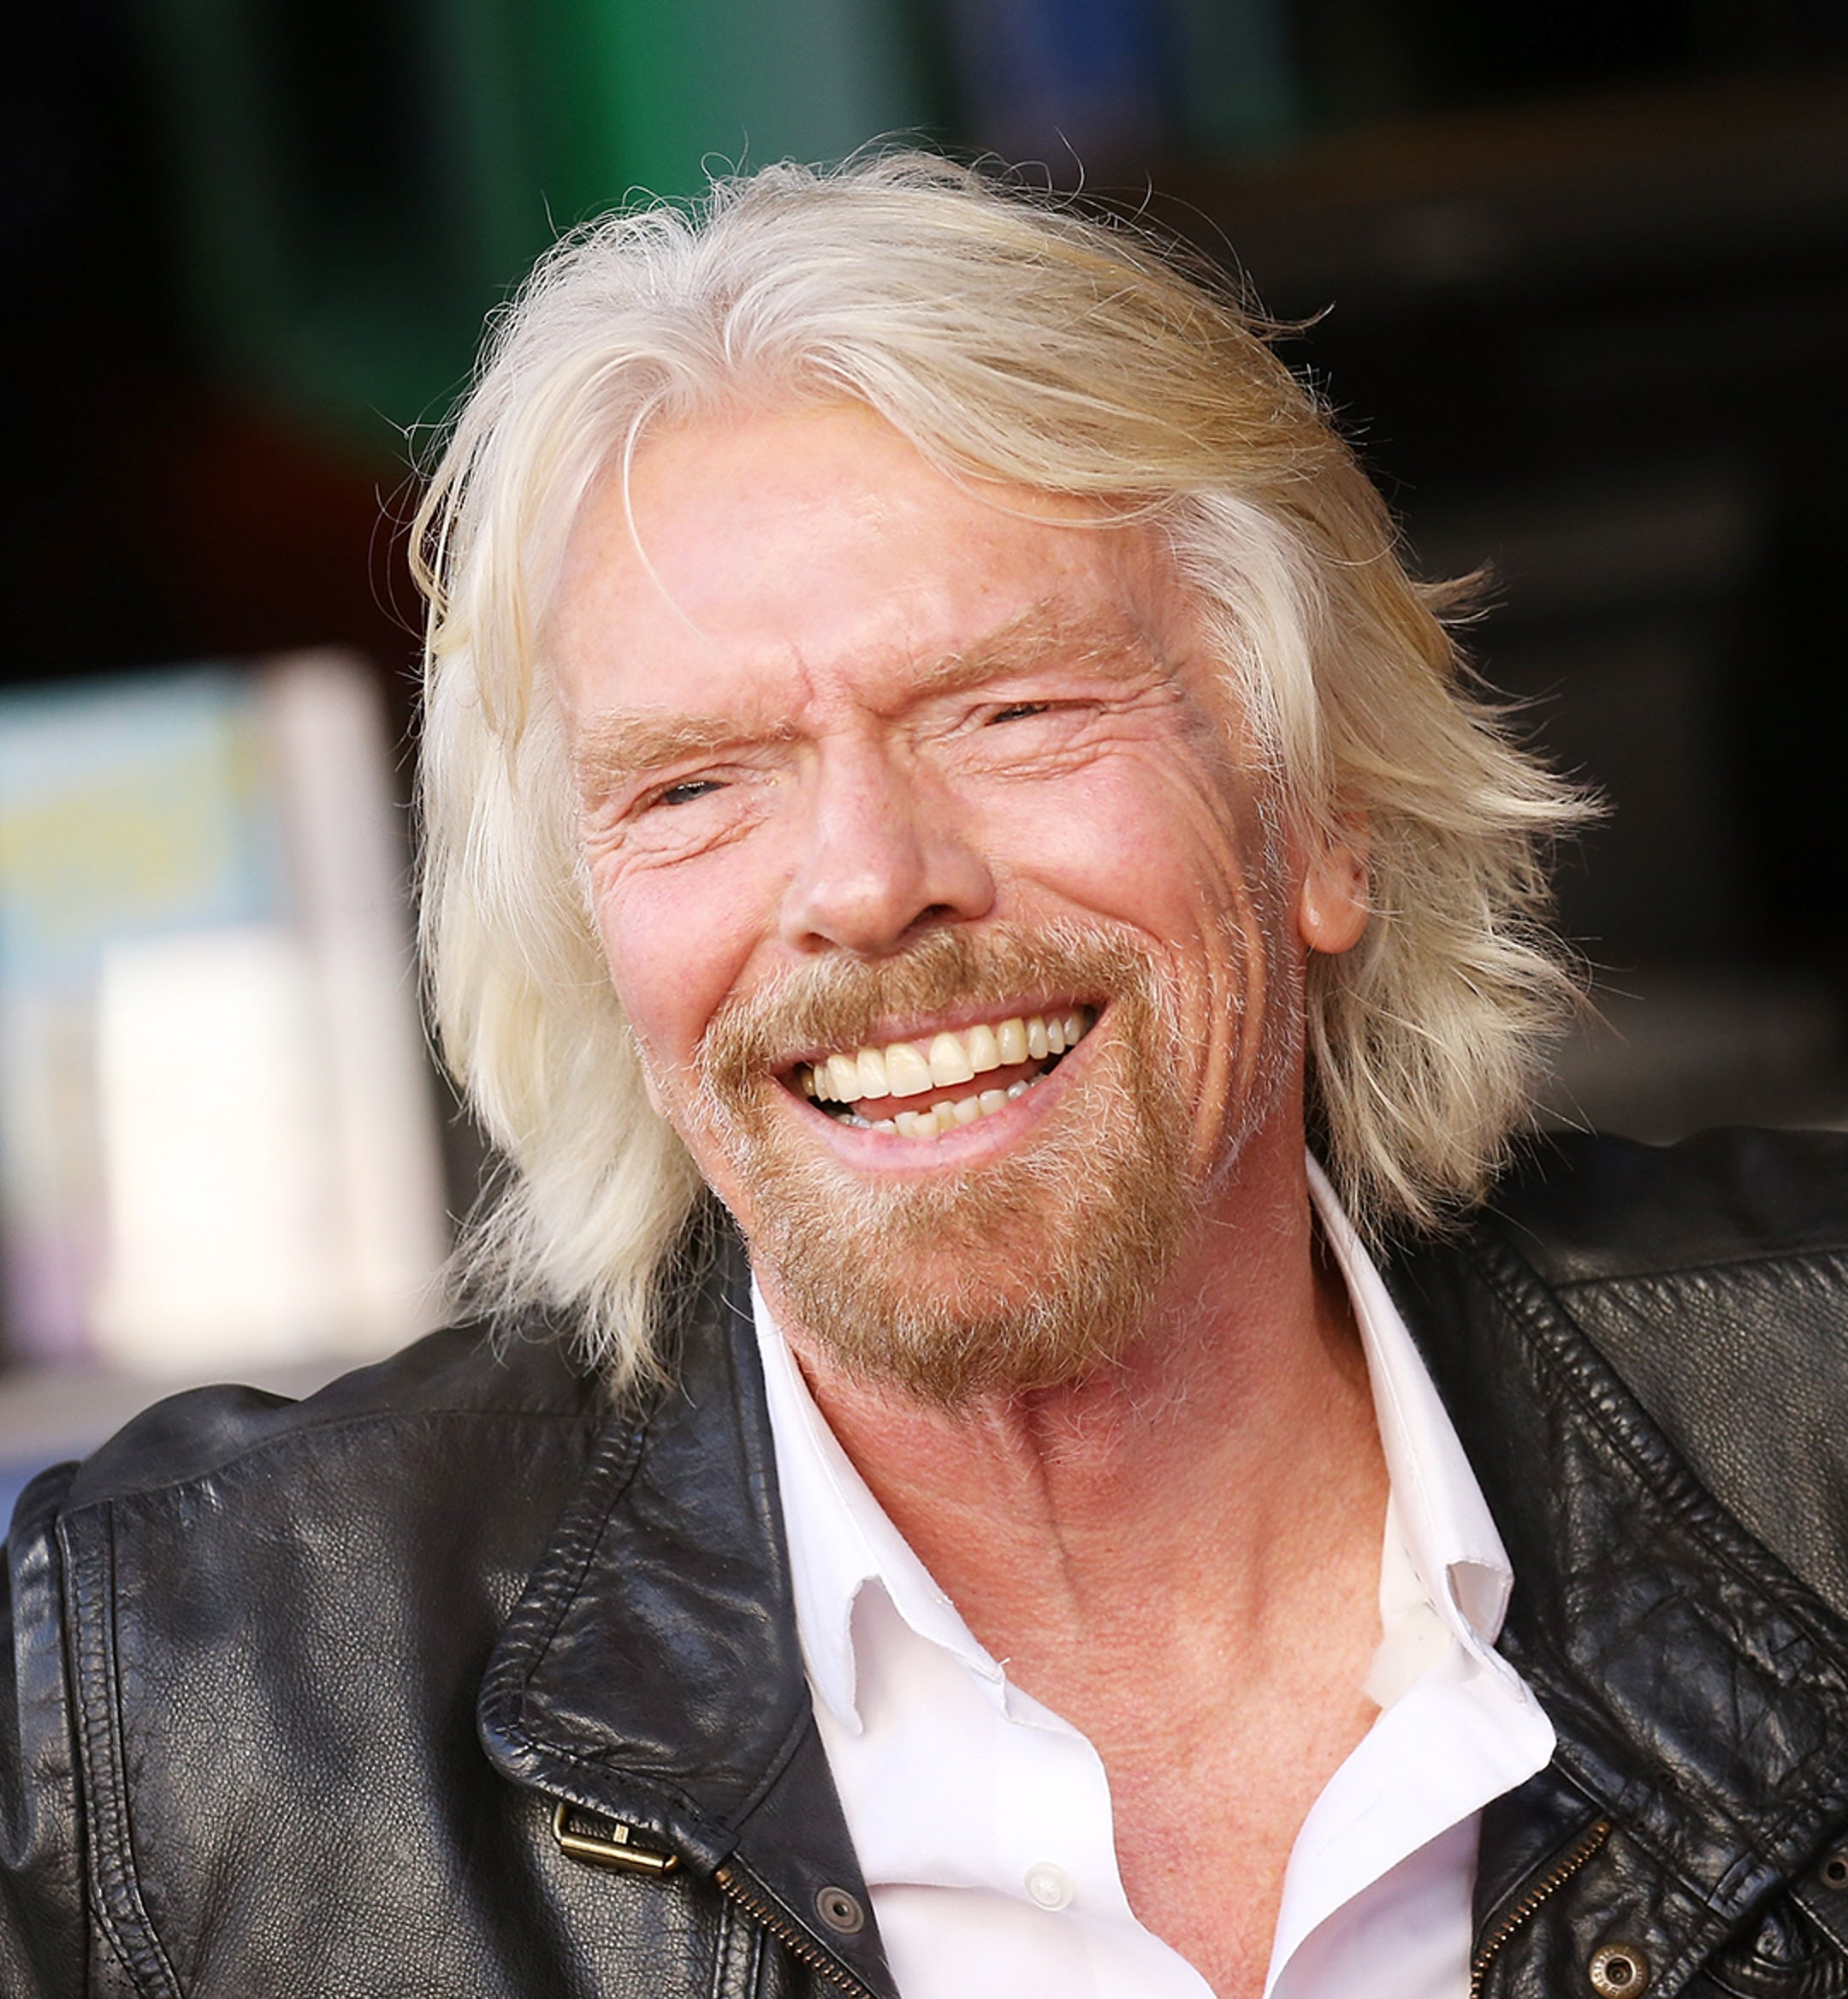 Richard Branson mobile